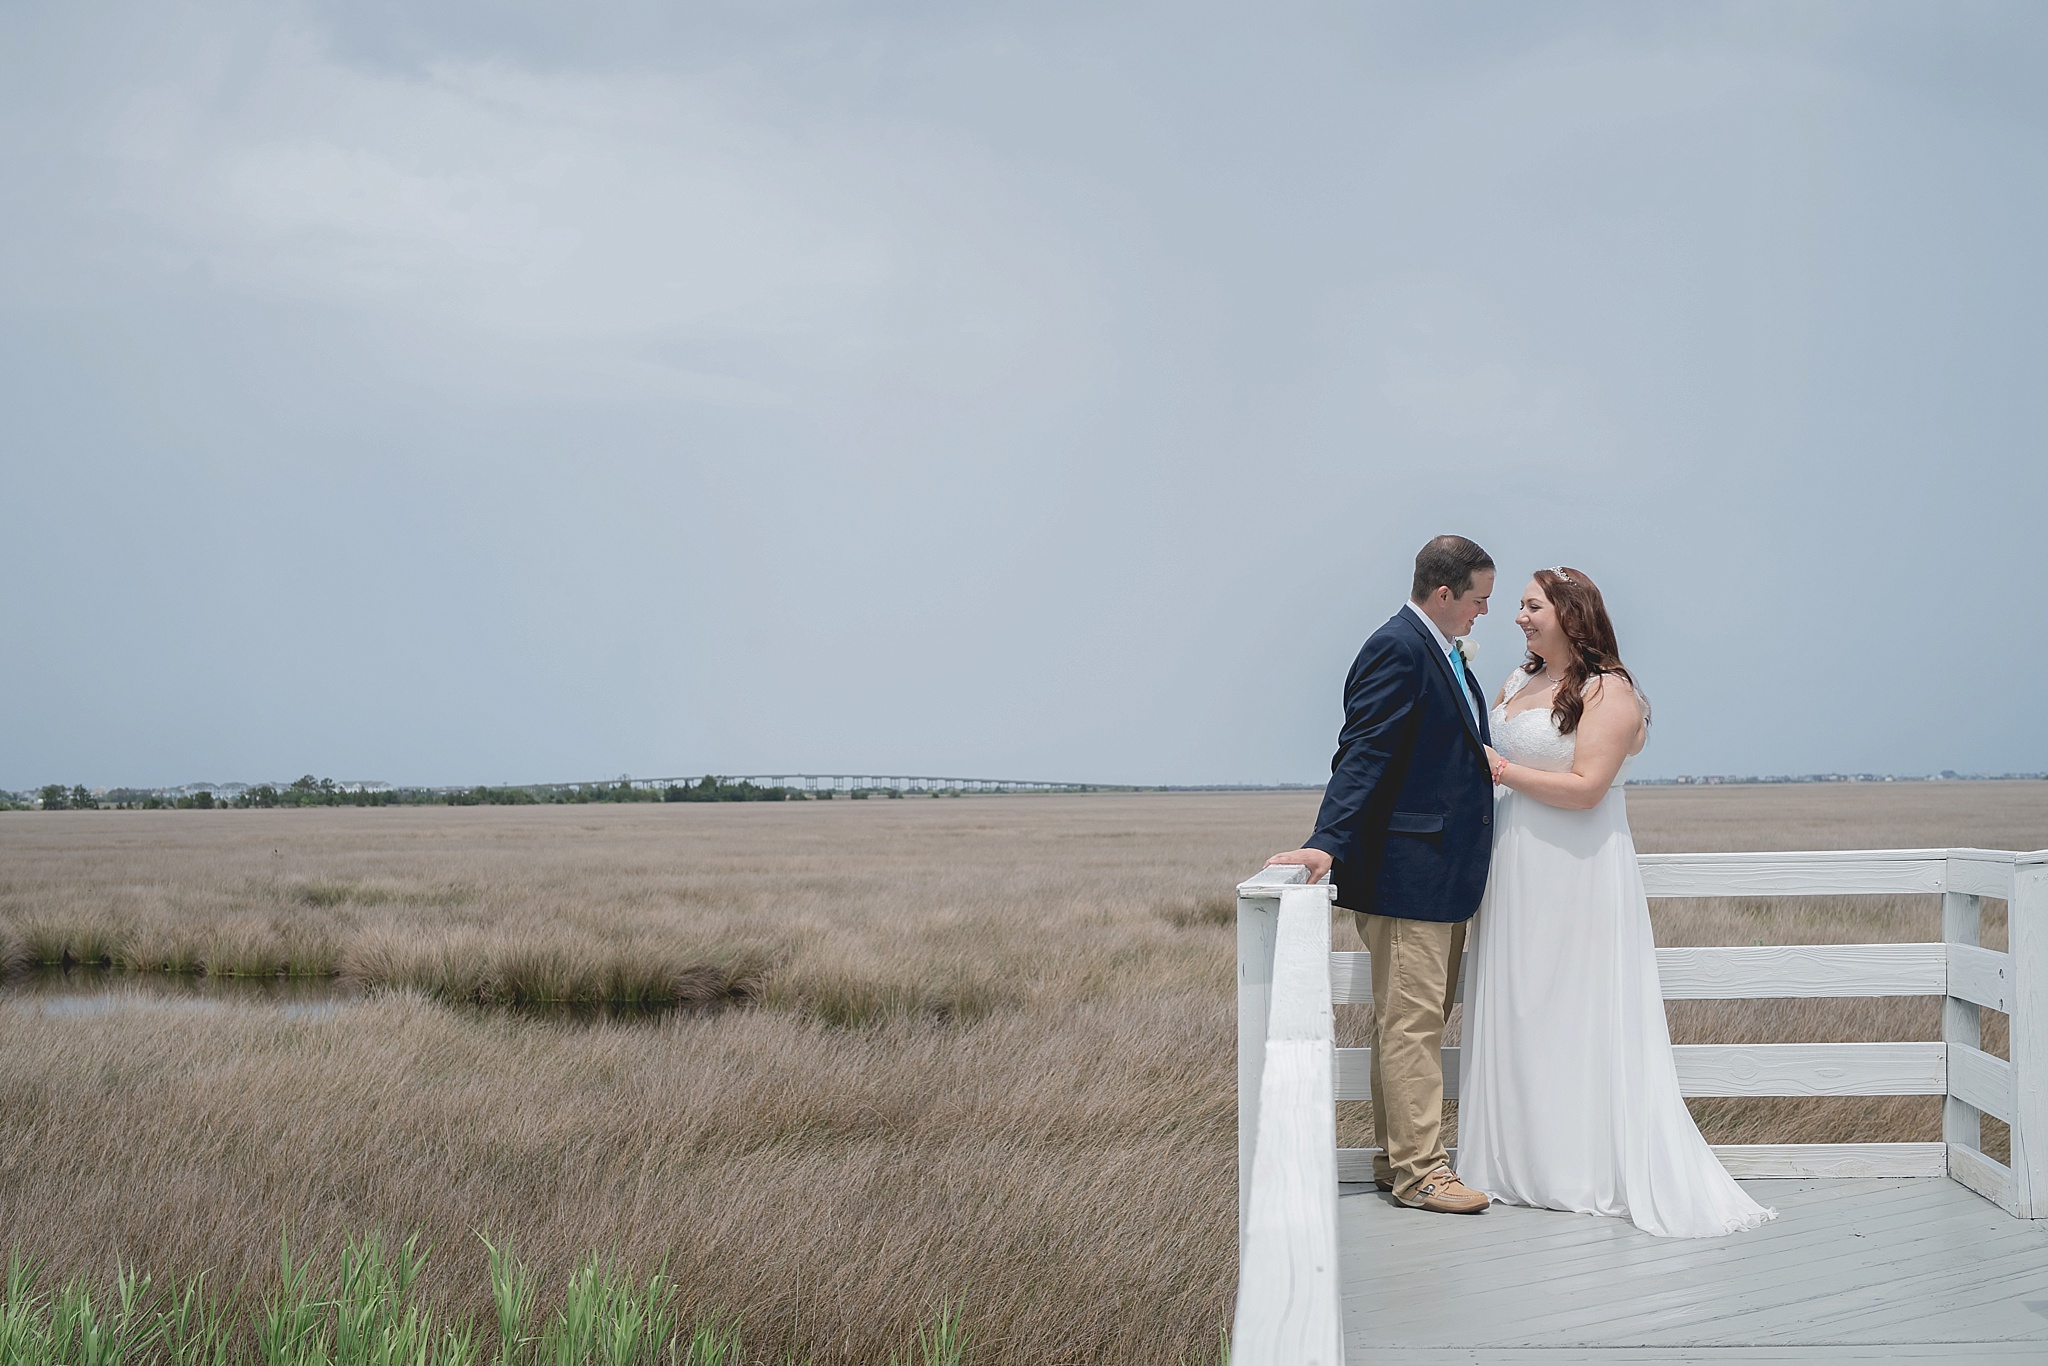 Manteo-NC-Wedding-Photographer-136.jpg